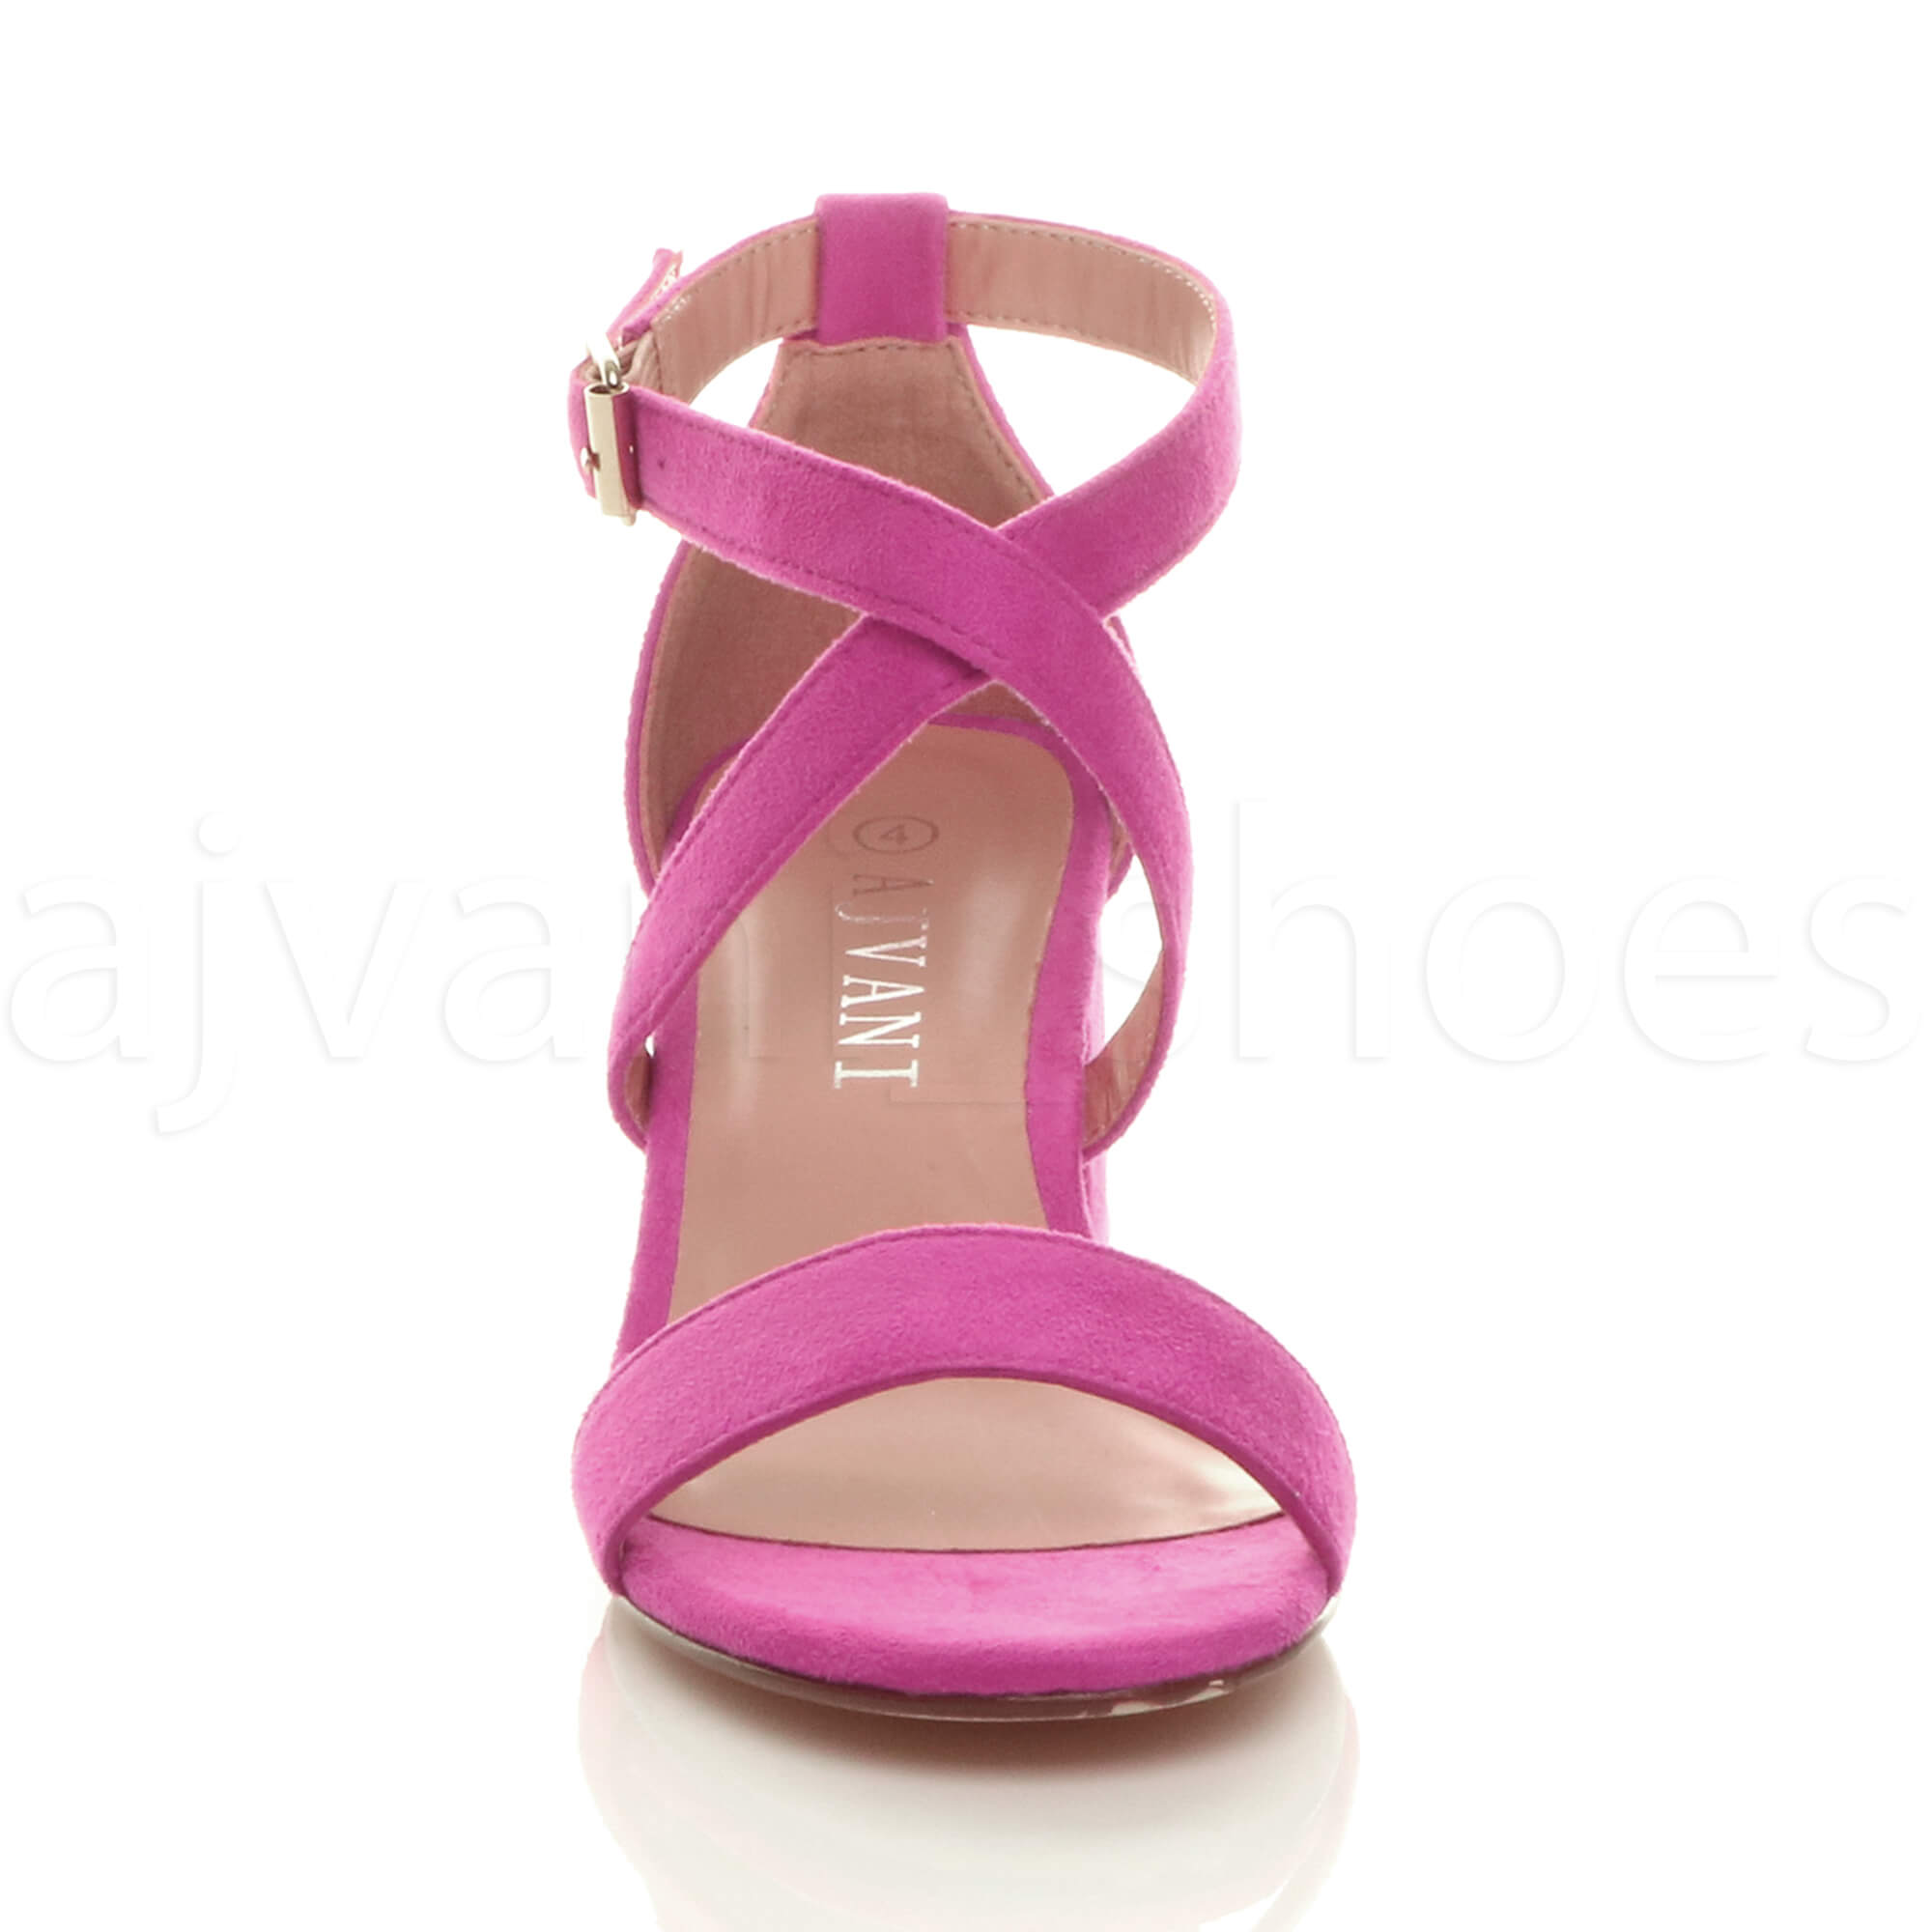 WOMENS-LADIES-MID-LOW-BLOCK-HEEL-CROSS-STRAPS-PARTY-STRAPPY-SANDALS-SHOES-SIZE thumbnail 26